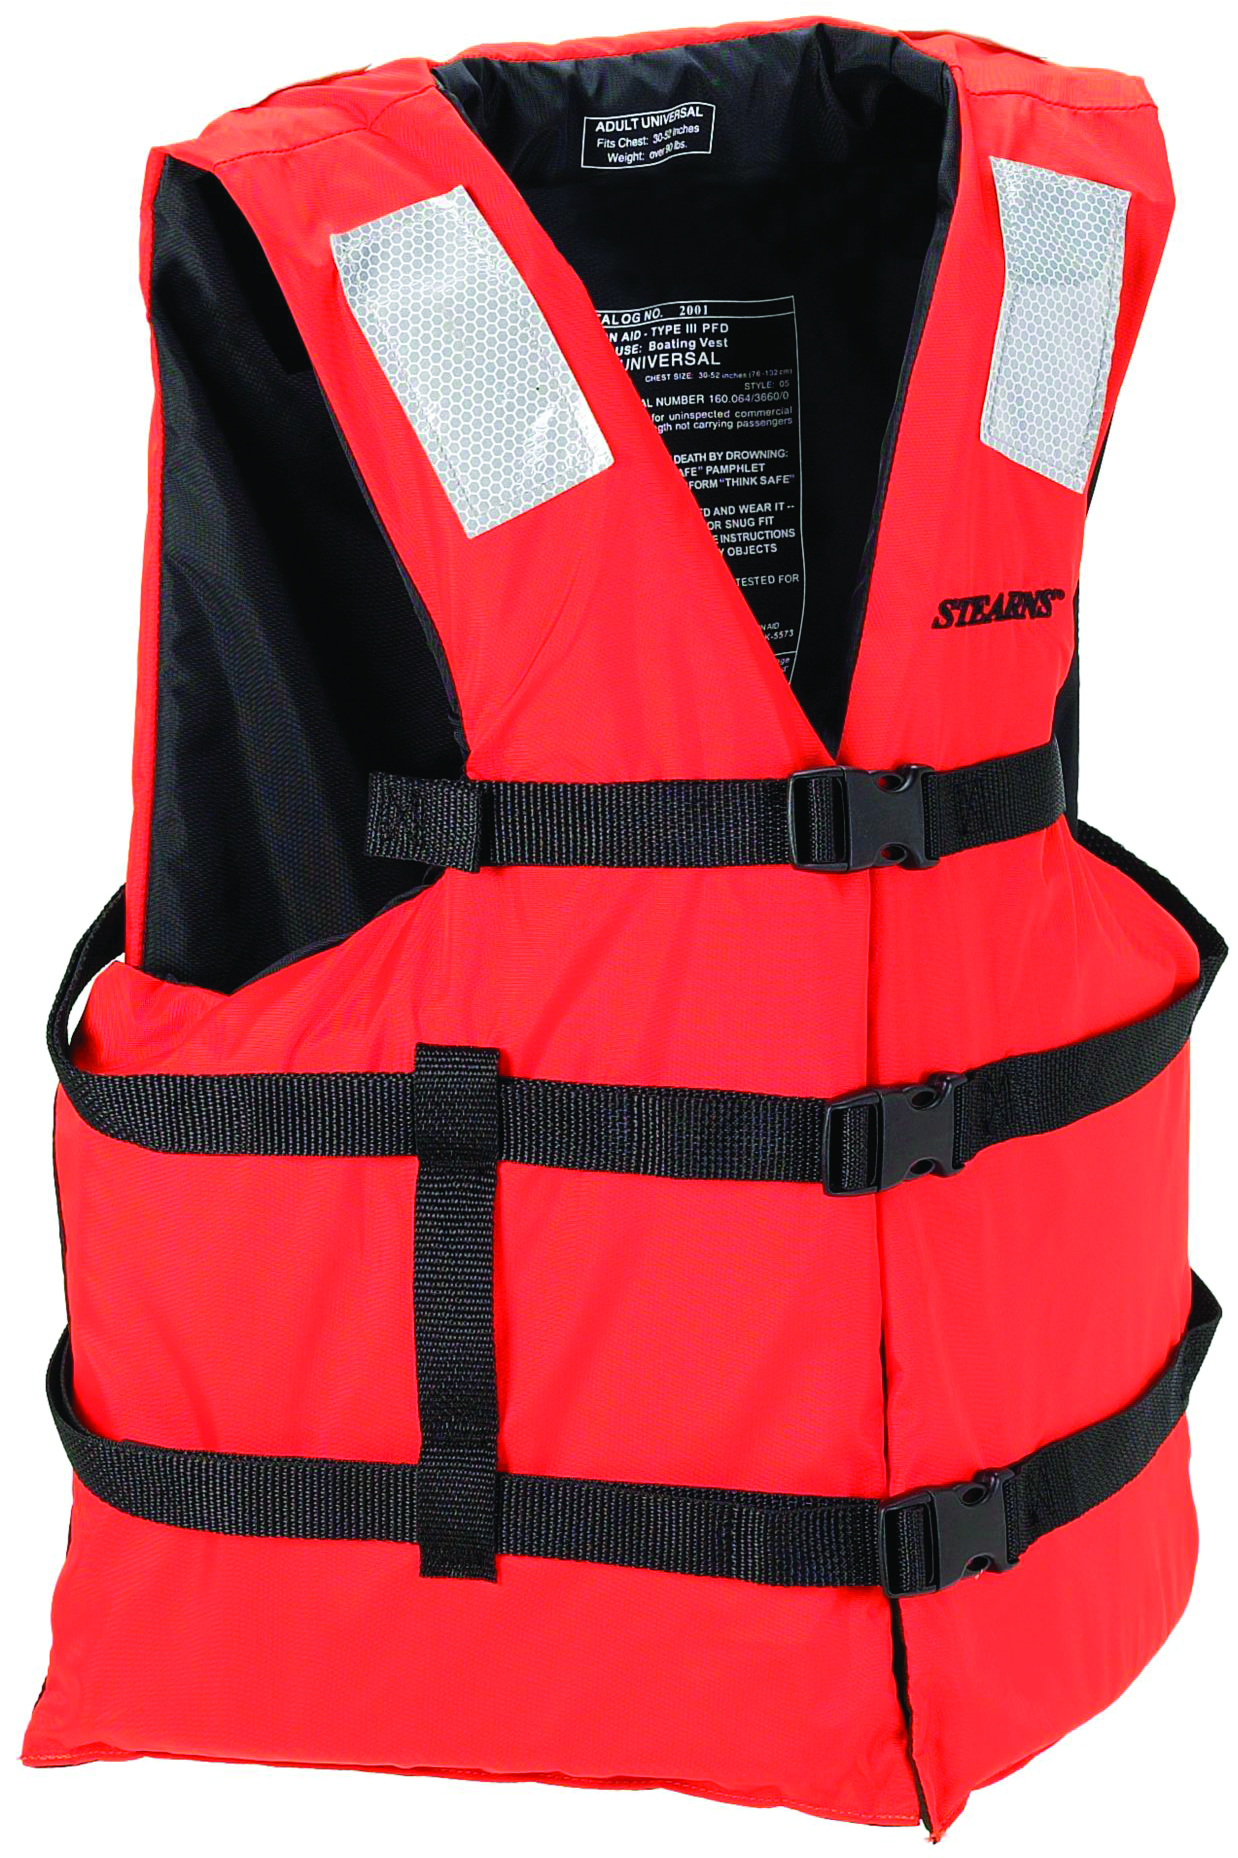 2000011389 - General Purpose Vests-General Purpose Life Vests-Size: Universal----UOM: 1/EA